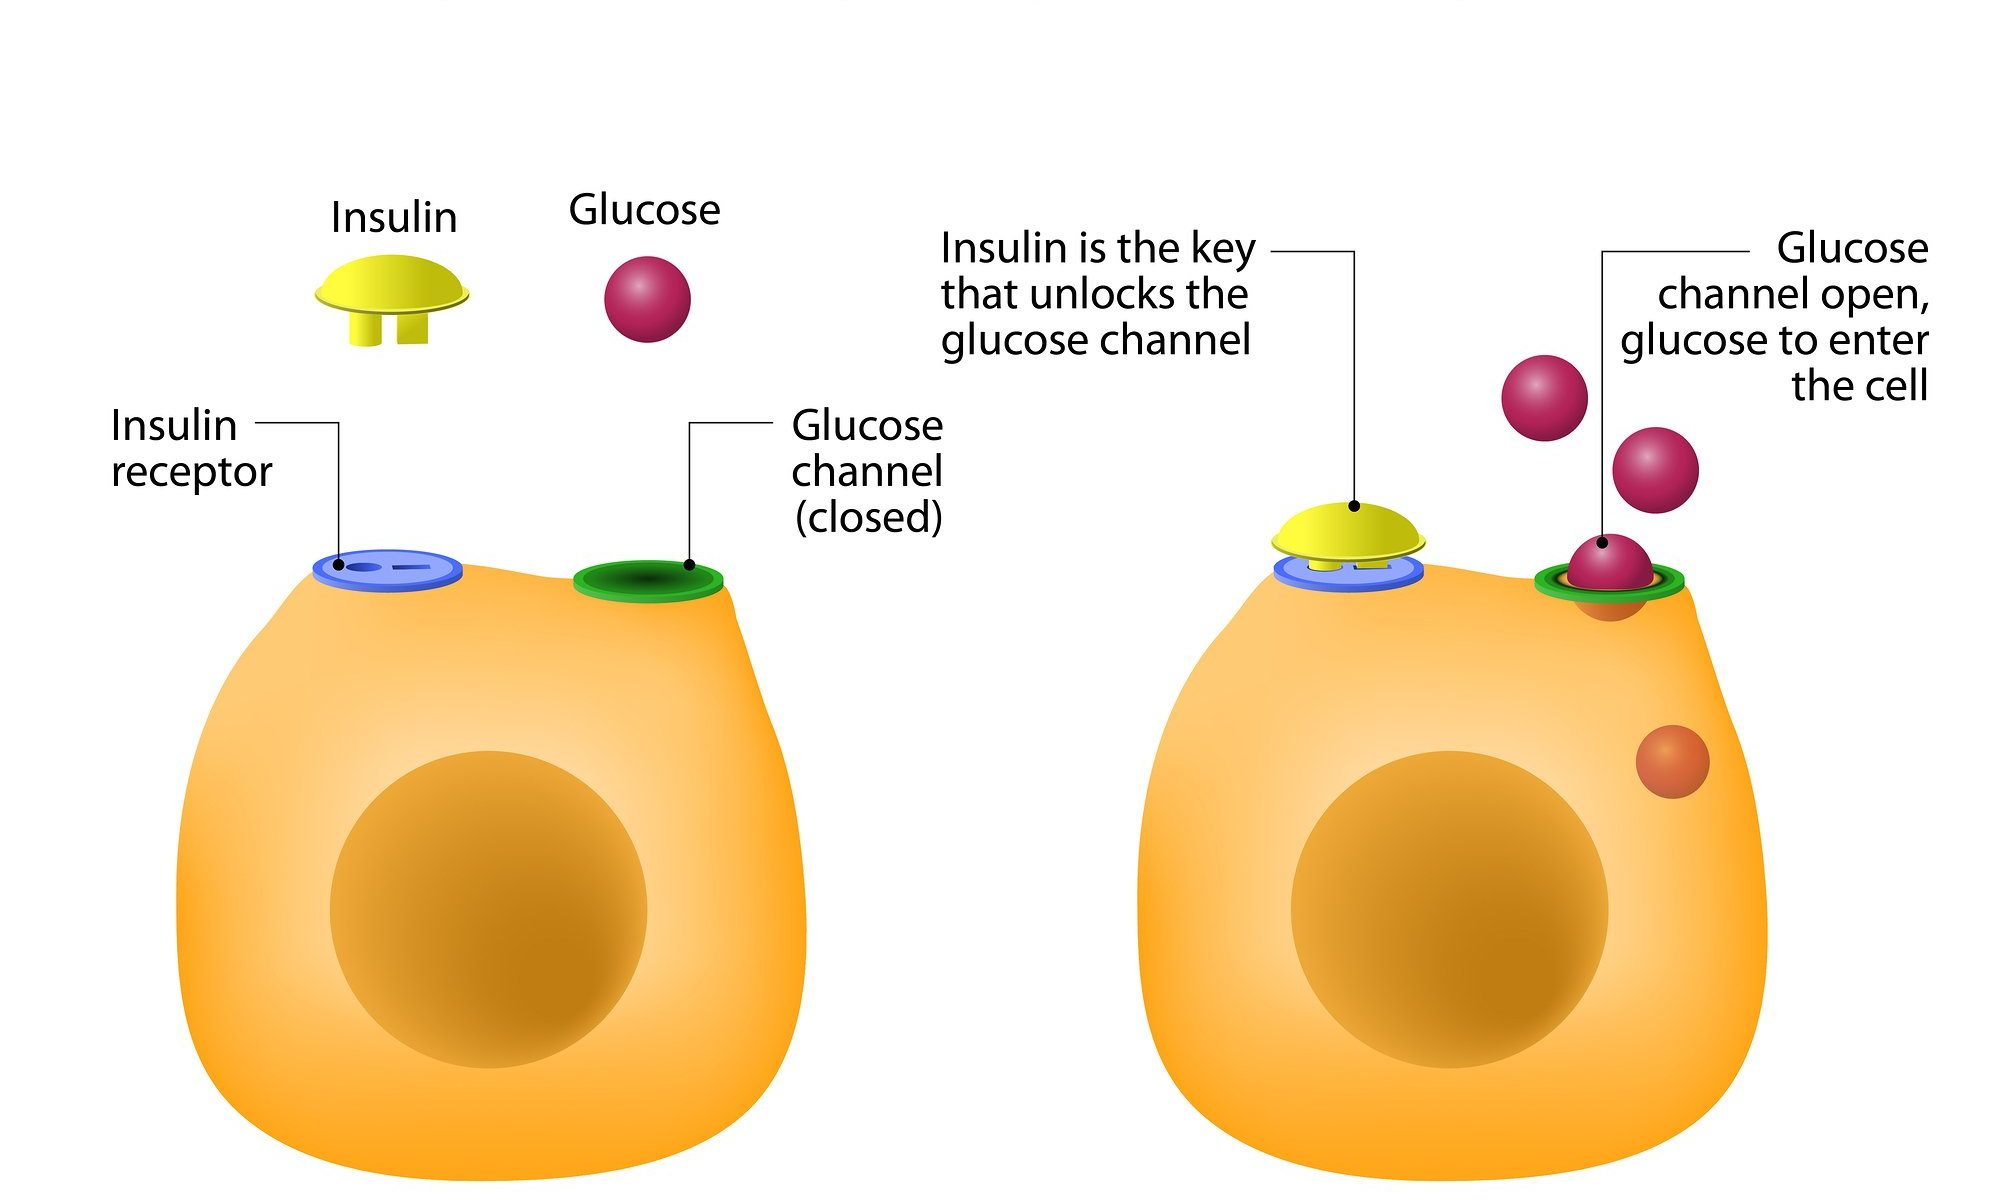 optimize insulin and prevent diabetes